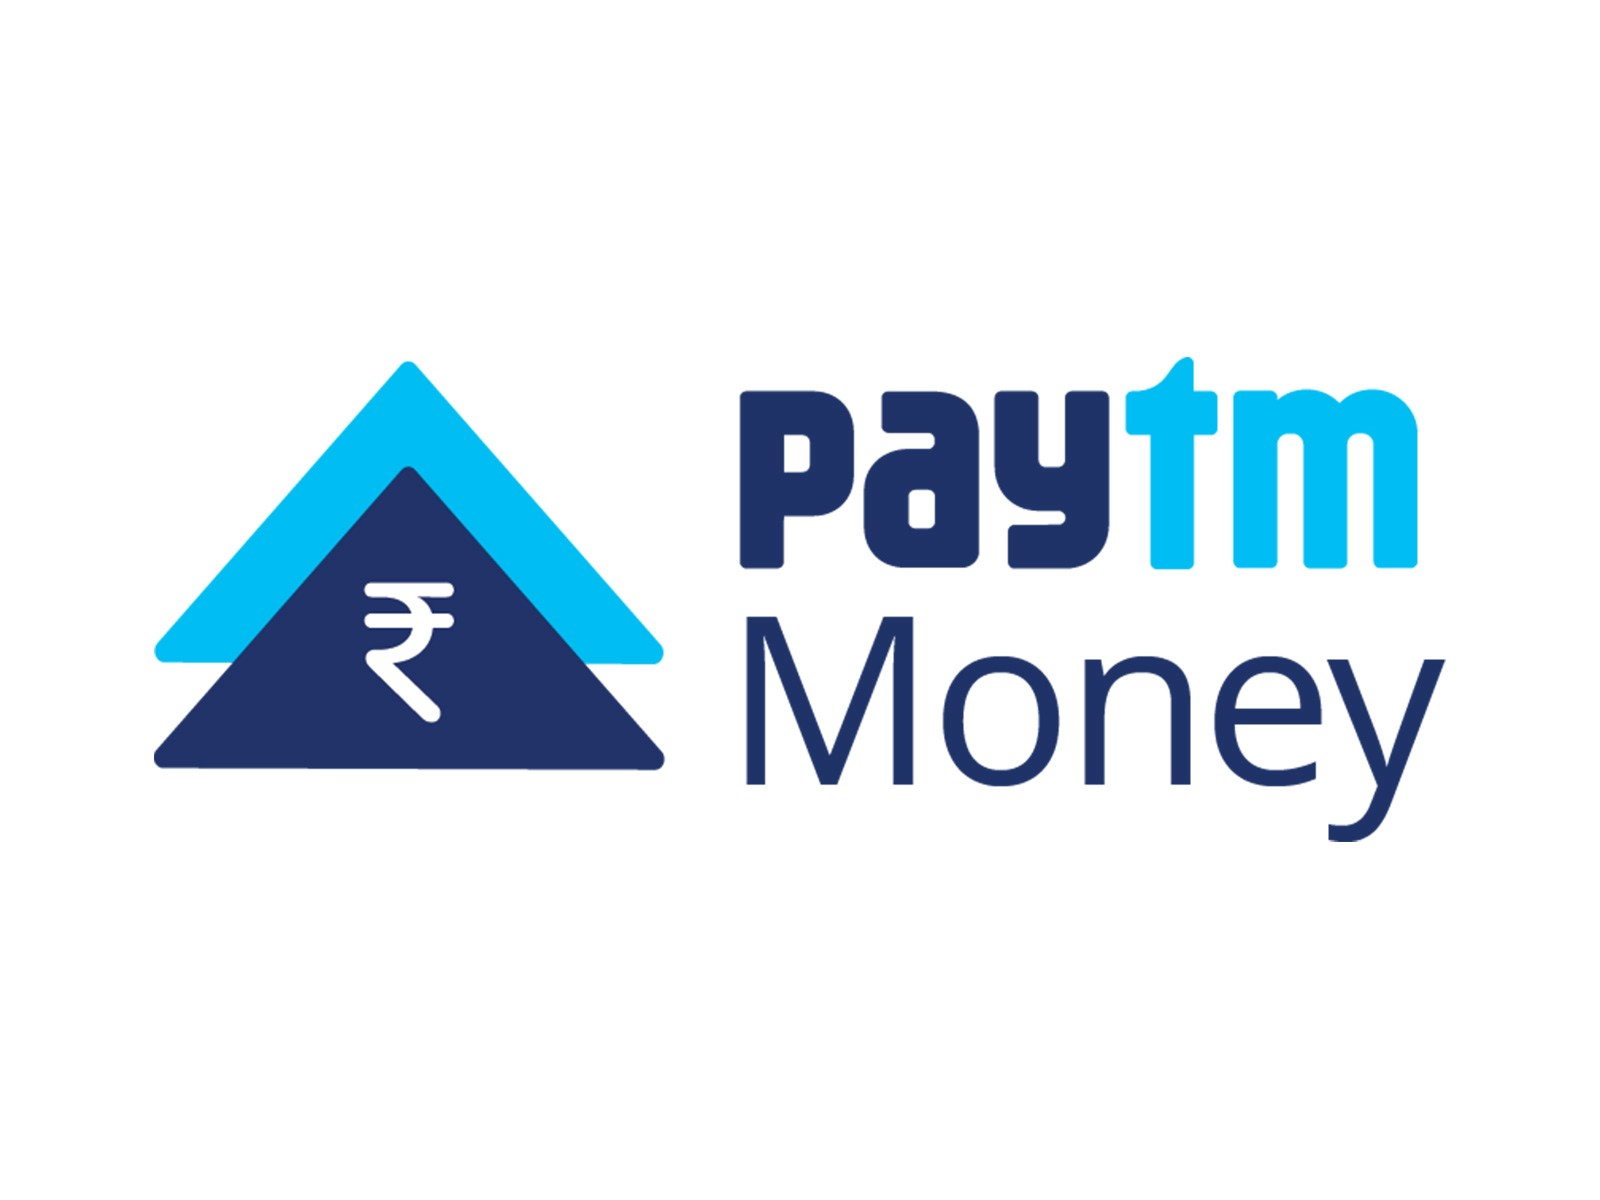 Paytm Money to Commence Operations in Next Few Weeks